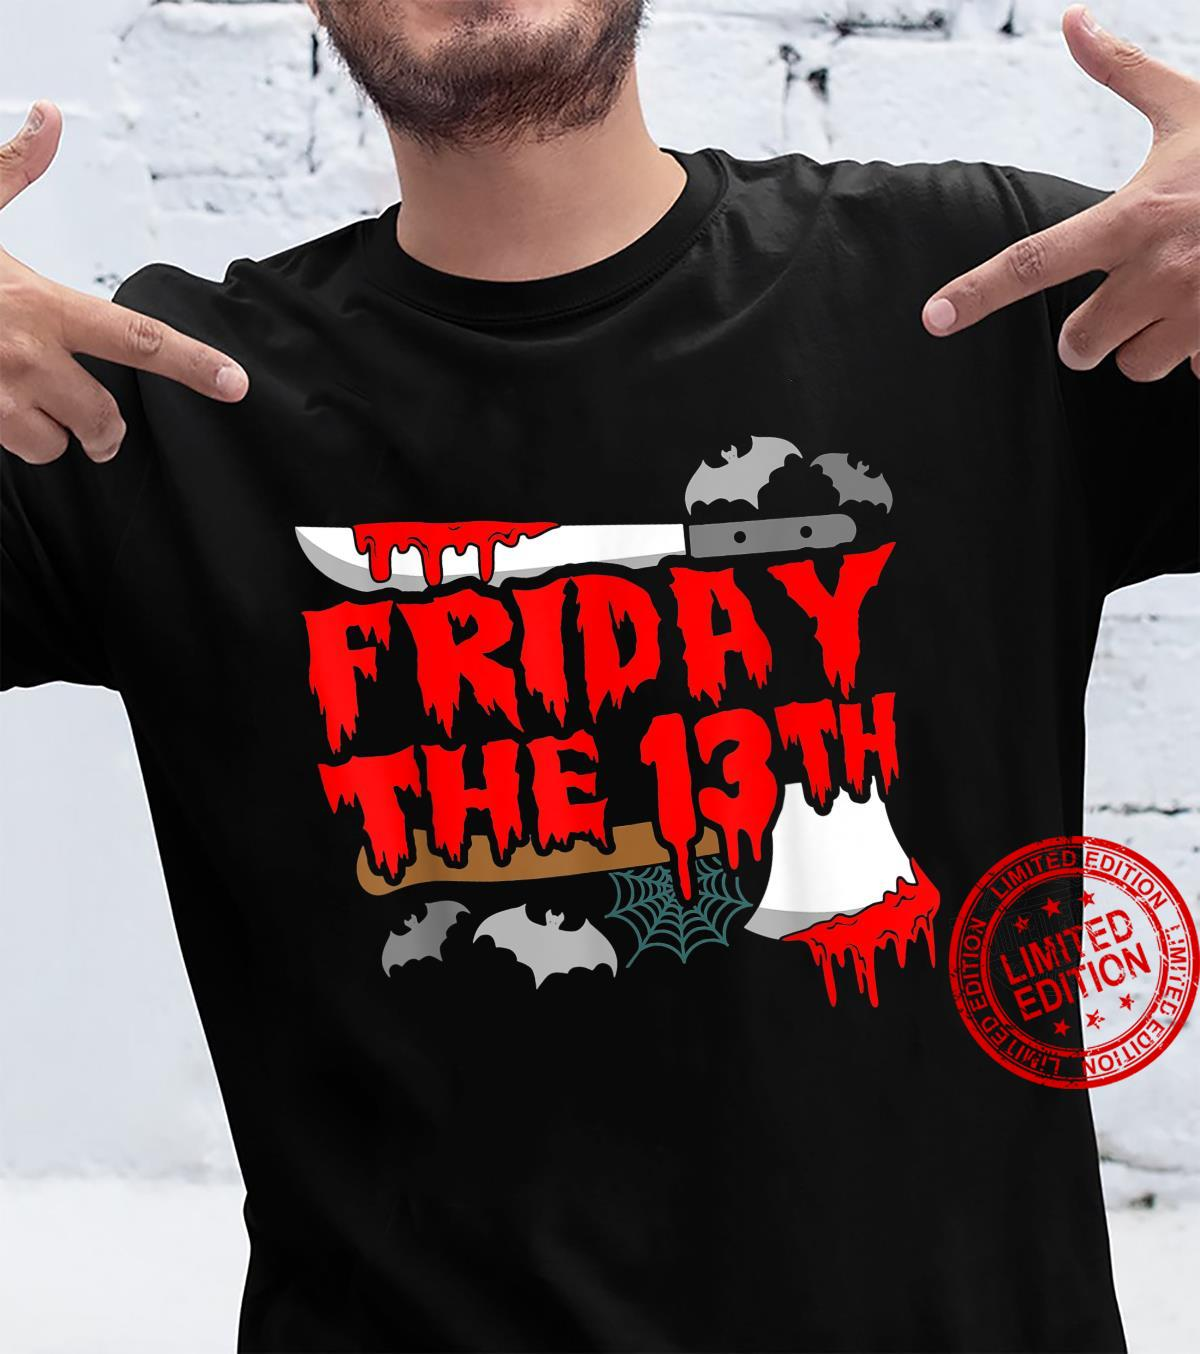 Friday the 13th Shirt